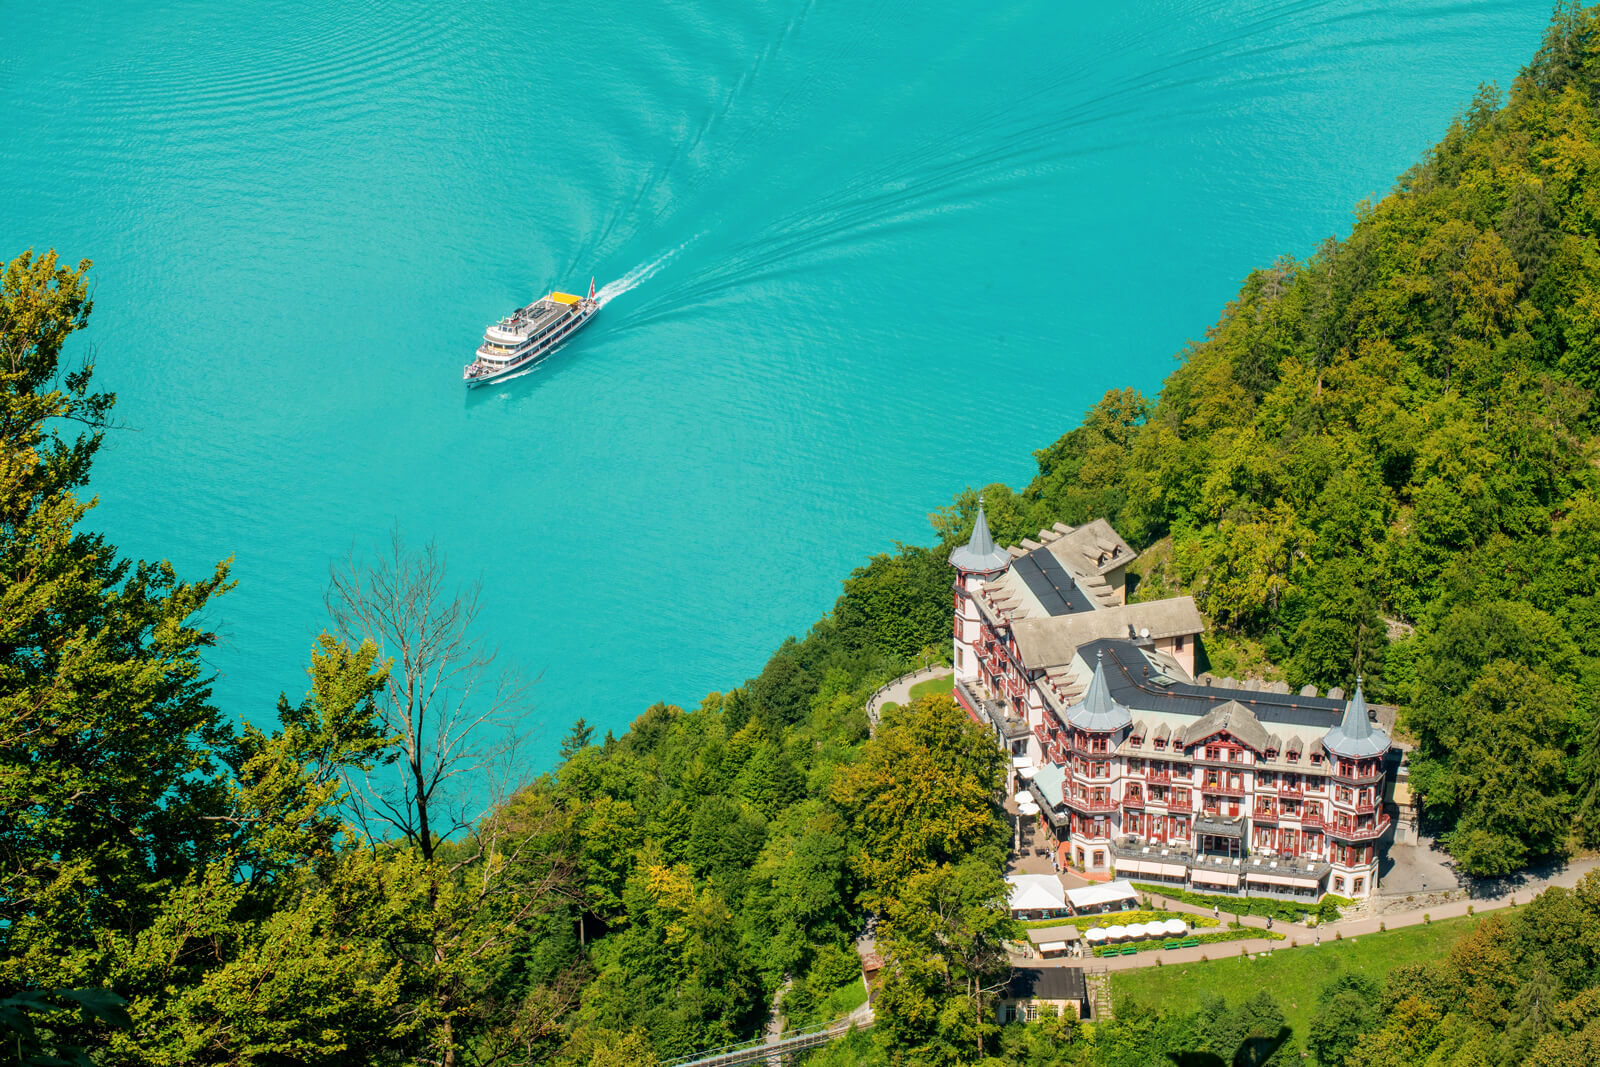 Lake Brienz Boat Cruise at Giessbach Hotel